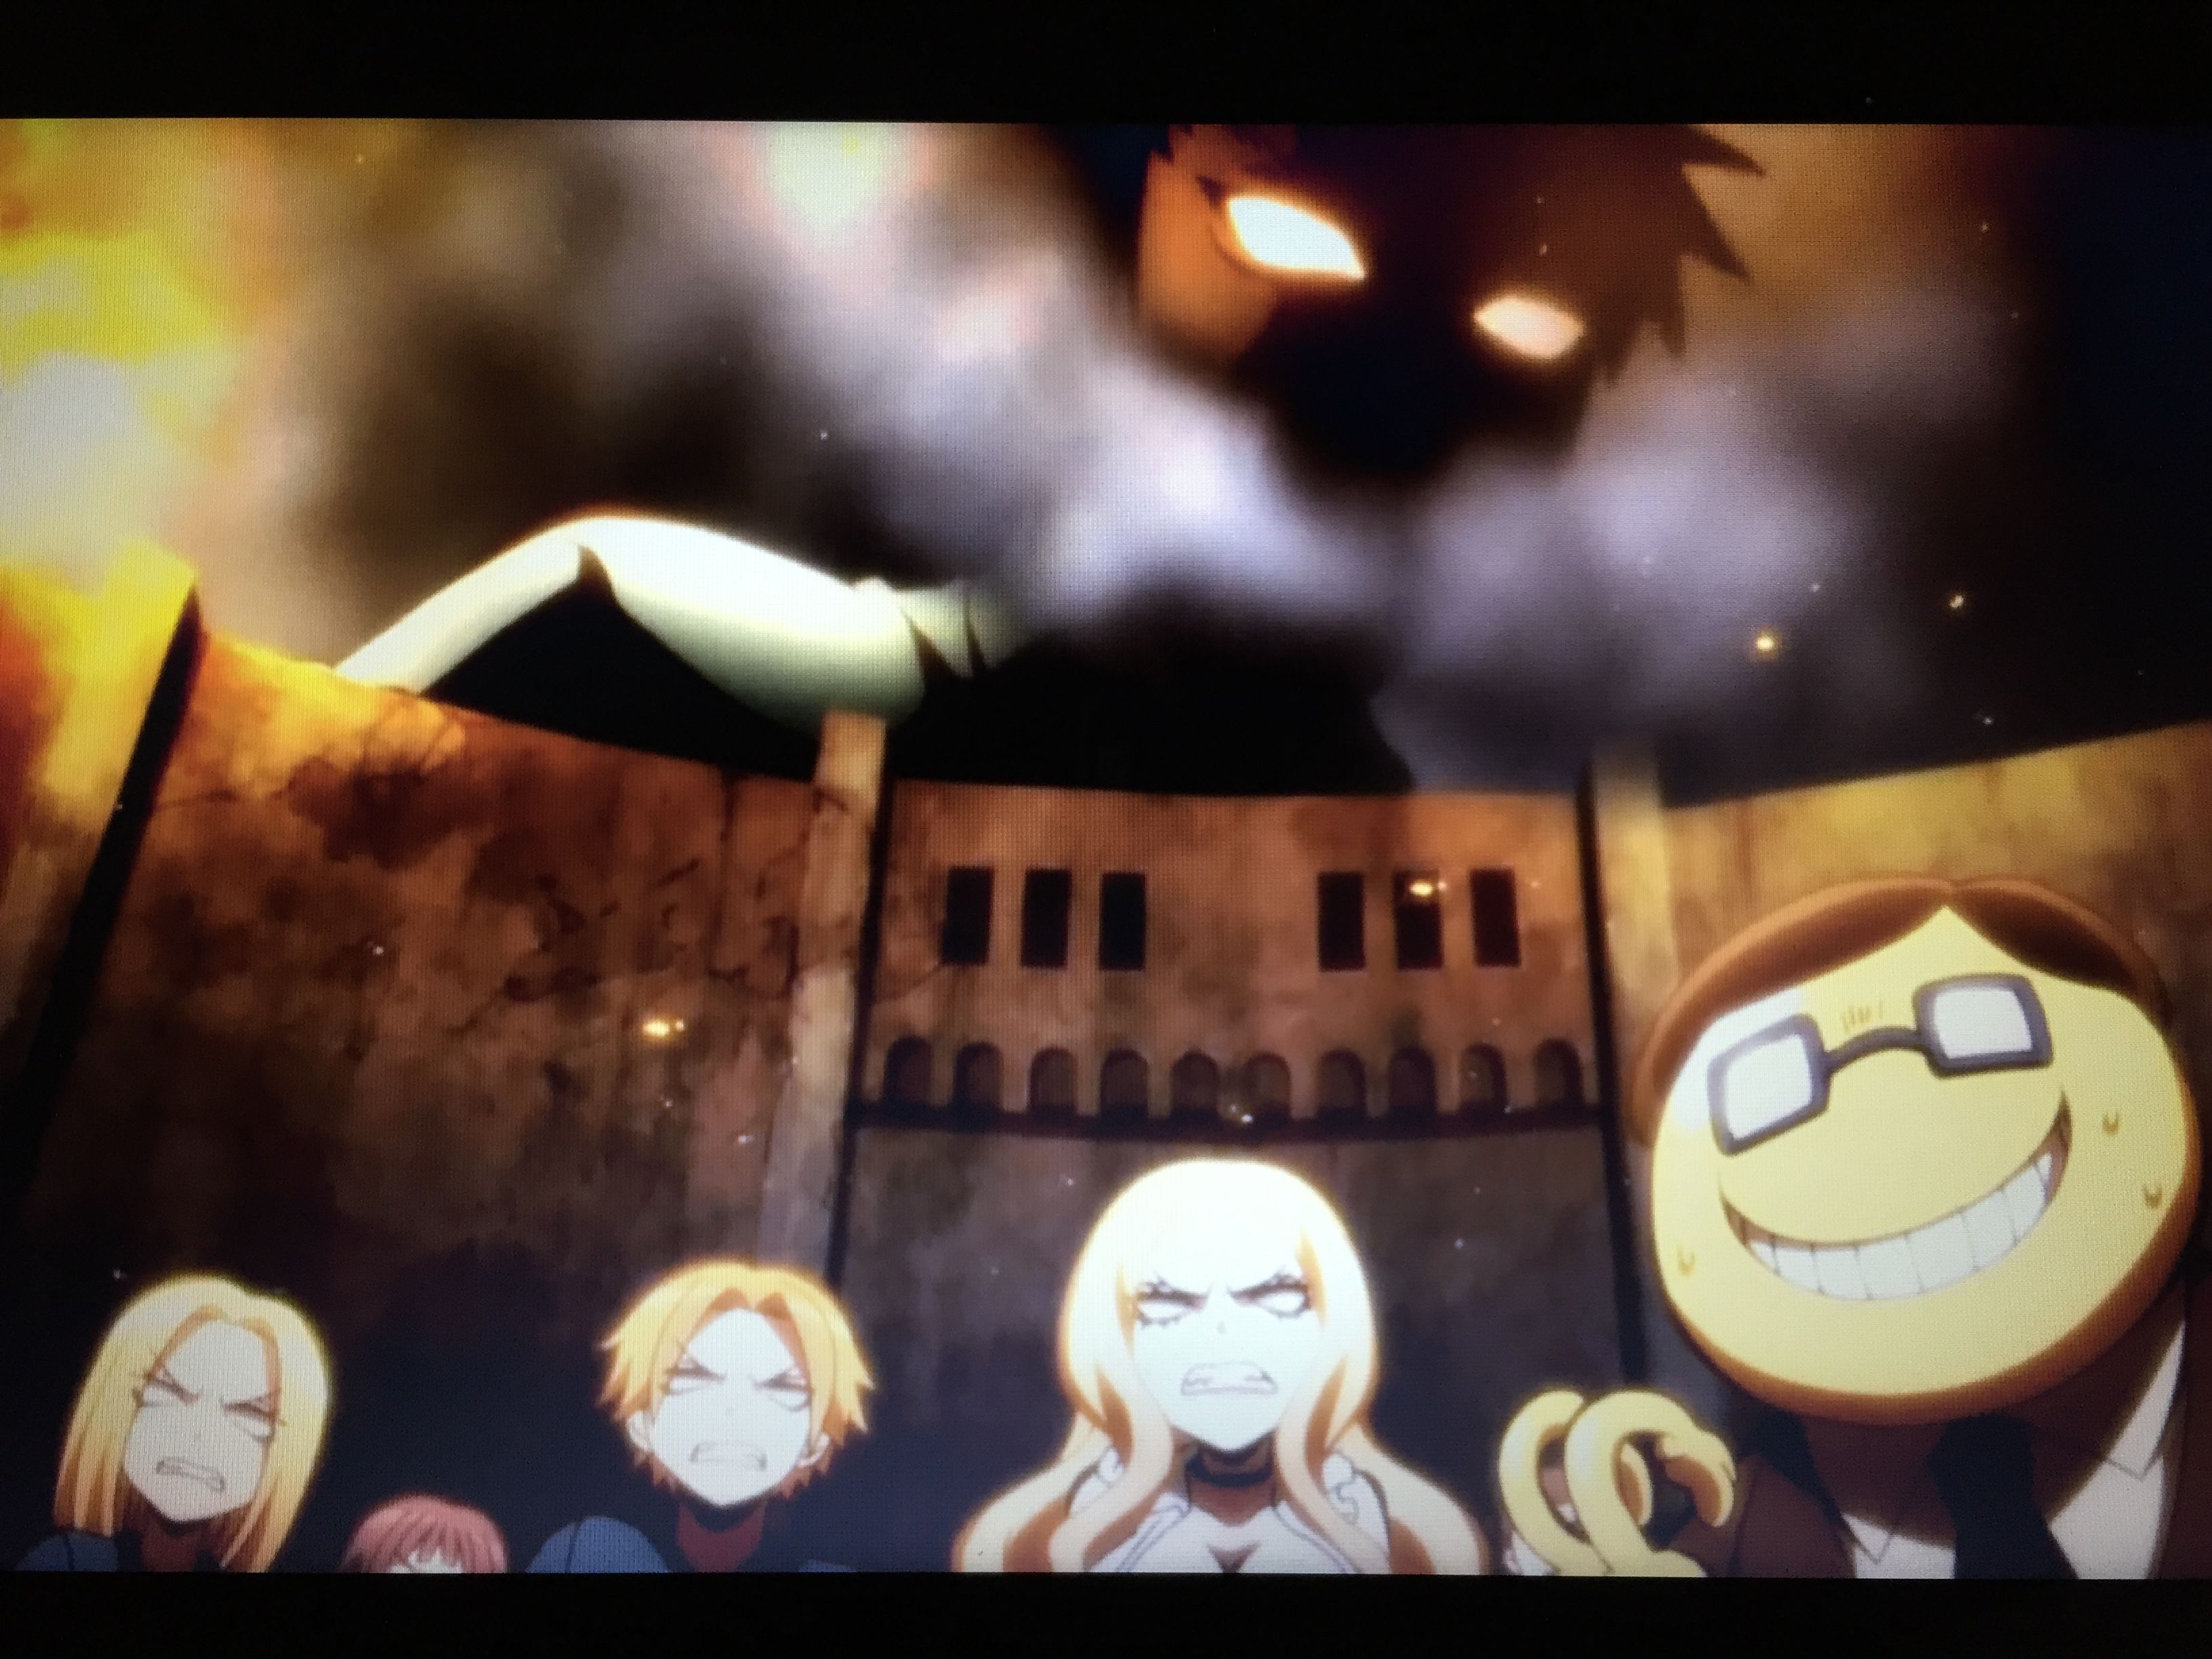 I Saw This Scene In Assassination Classroom And Laughed So Hard Aot Meets Assassination Classroom Assassination Classroom Anime Classroom